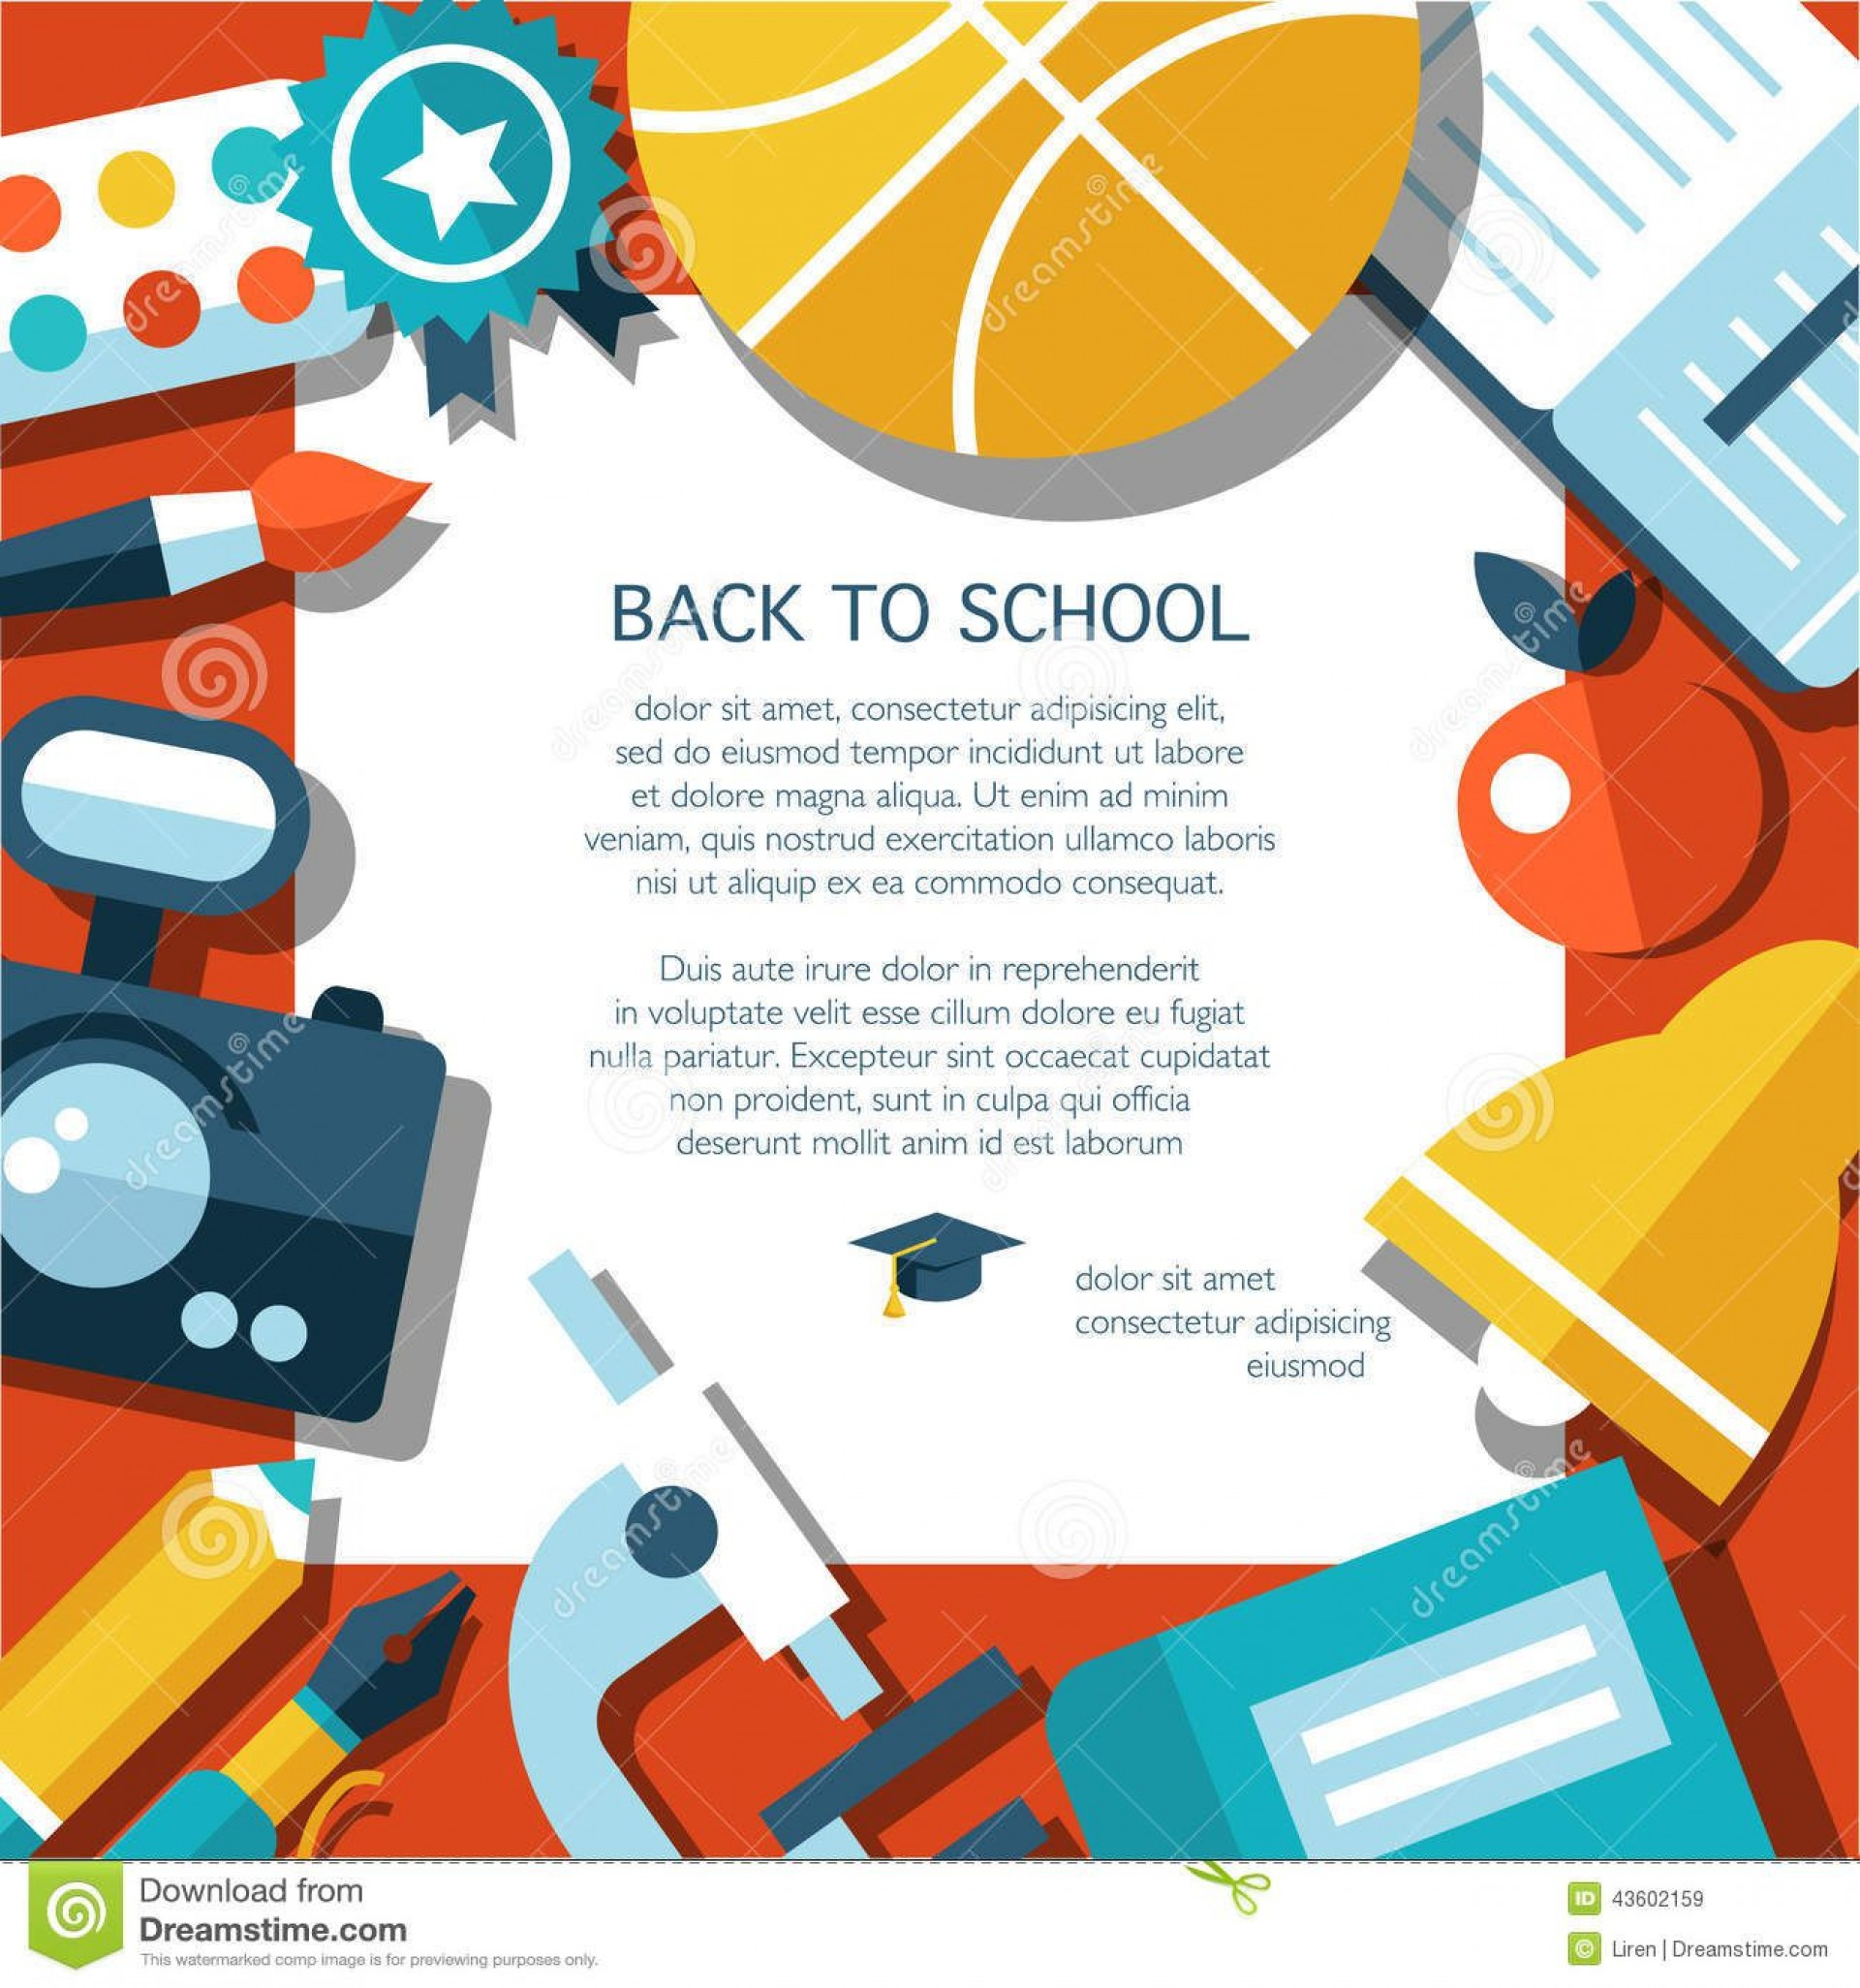 009 Awful Free School Flyer Design Template Highest Quality  Templates Creative Education Poster1920